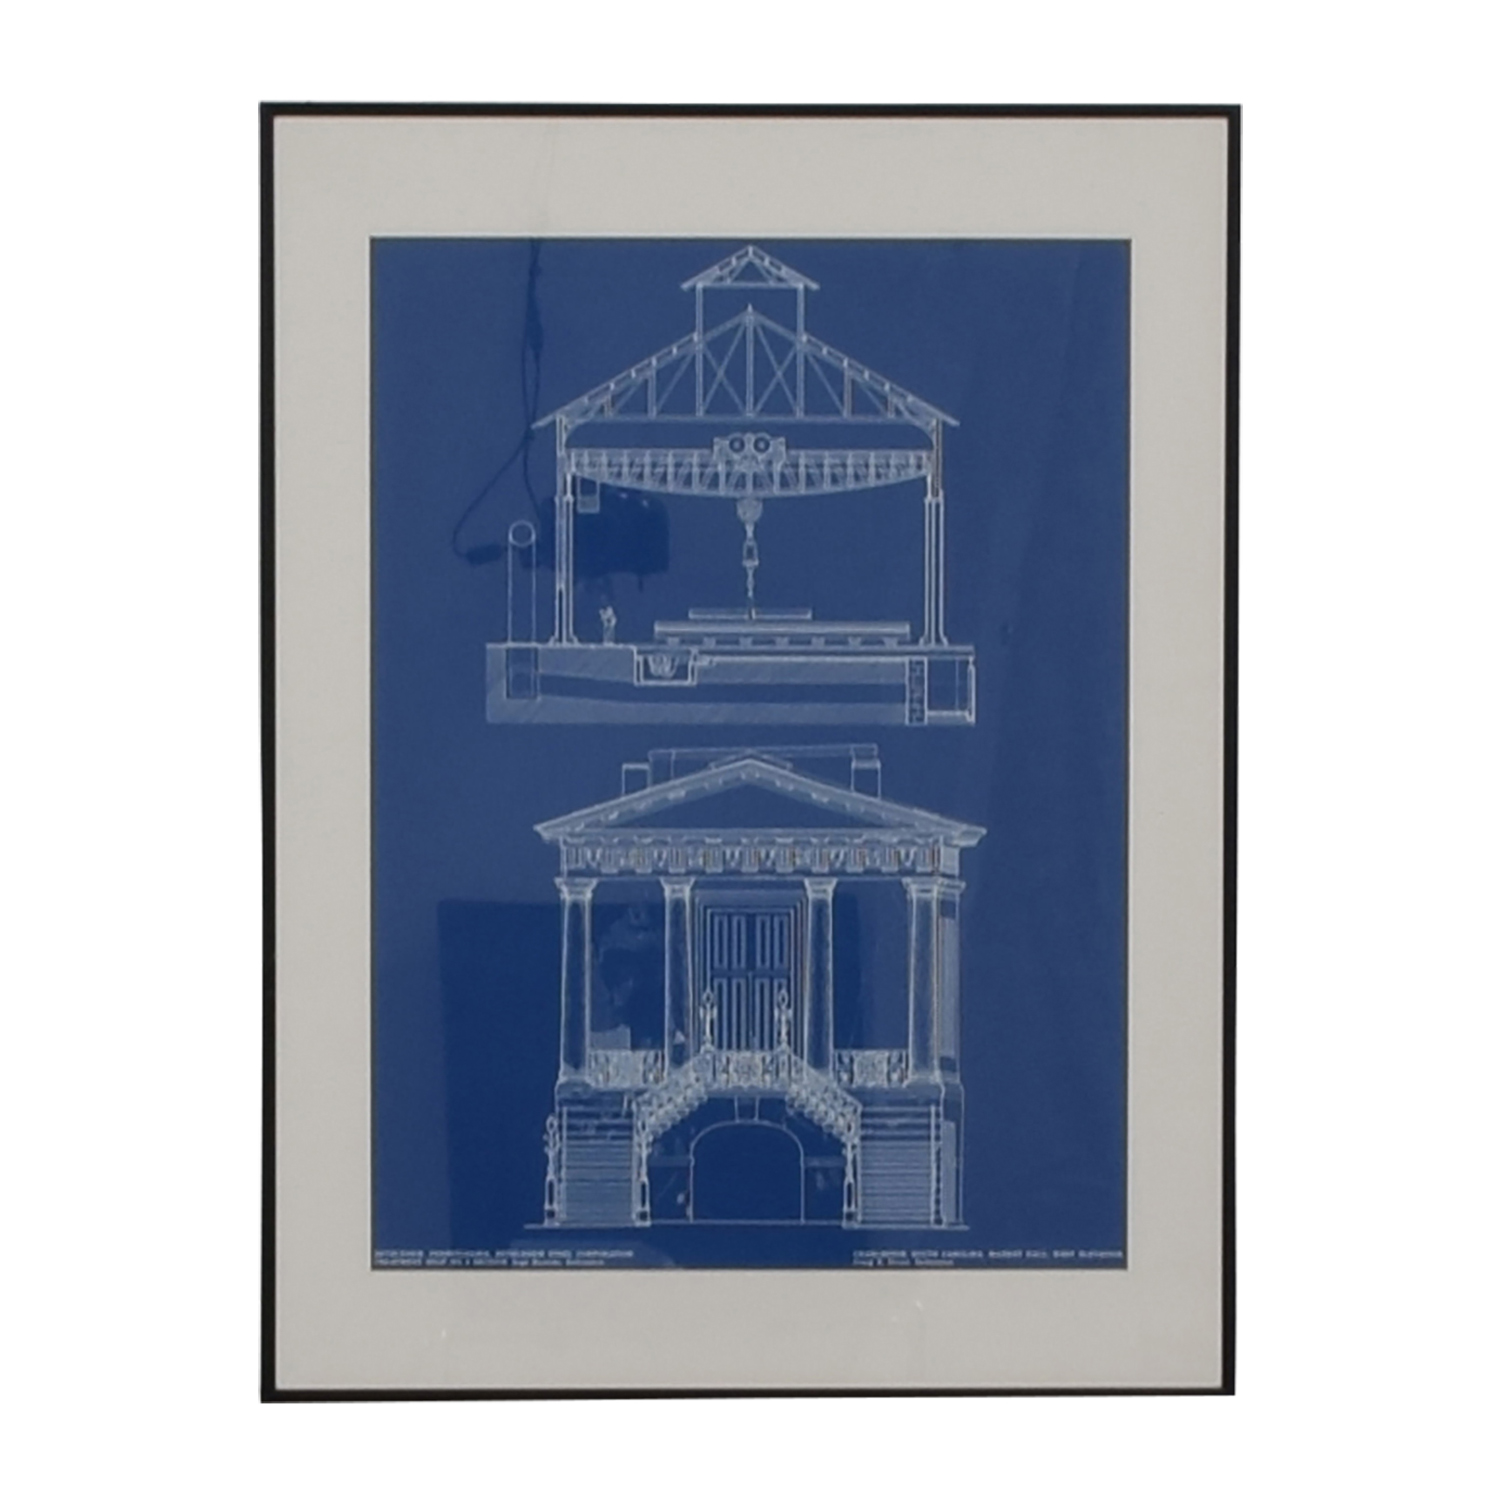 Market Hall Charleston South Carolina Blueprint Framed Print for sale